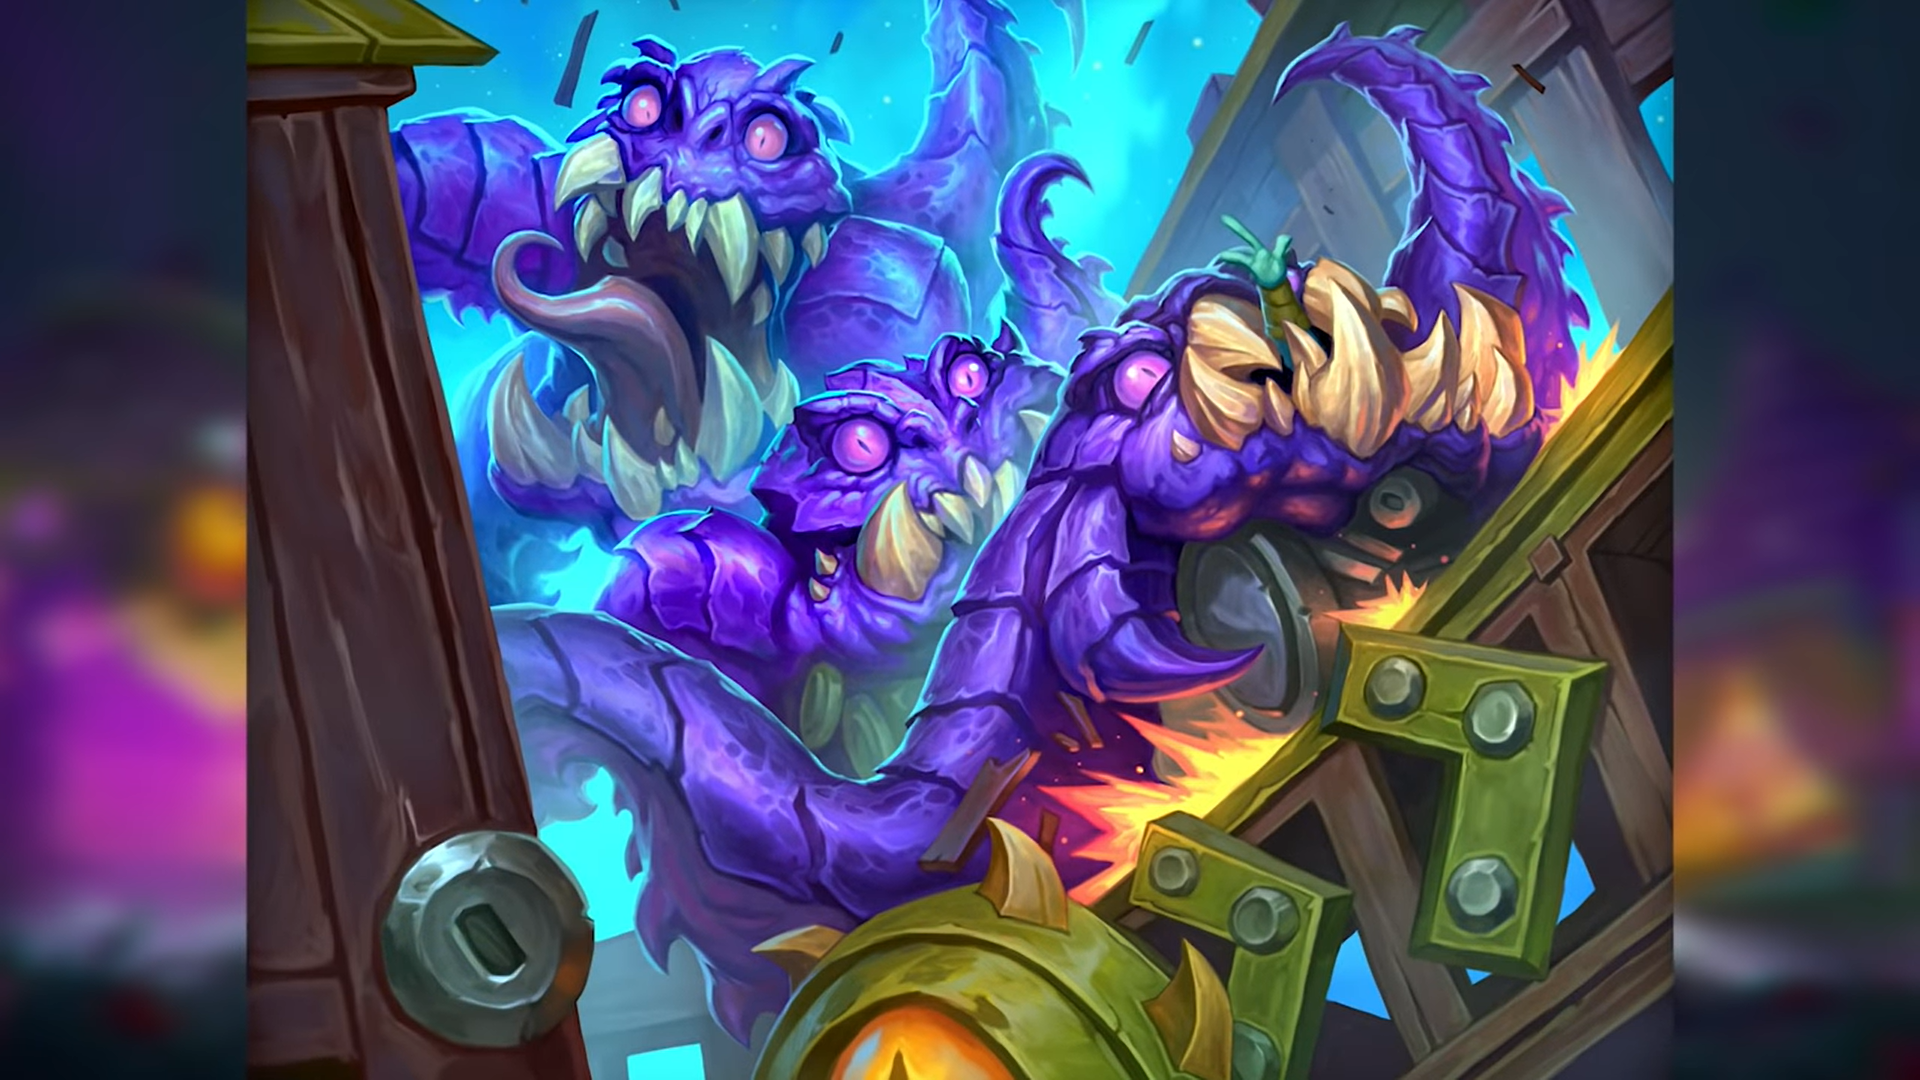 6 New Cards Revealed From Hearthstone S Madness At The Darkmoon Faire Expansion Mylocalesportsbar Hearthstone cardback by fortune.ranked october 2019 cardback this was the first cardback i got to design after joining blizzard. 6 new cards revealed from hearthstone s